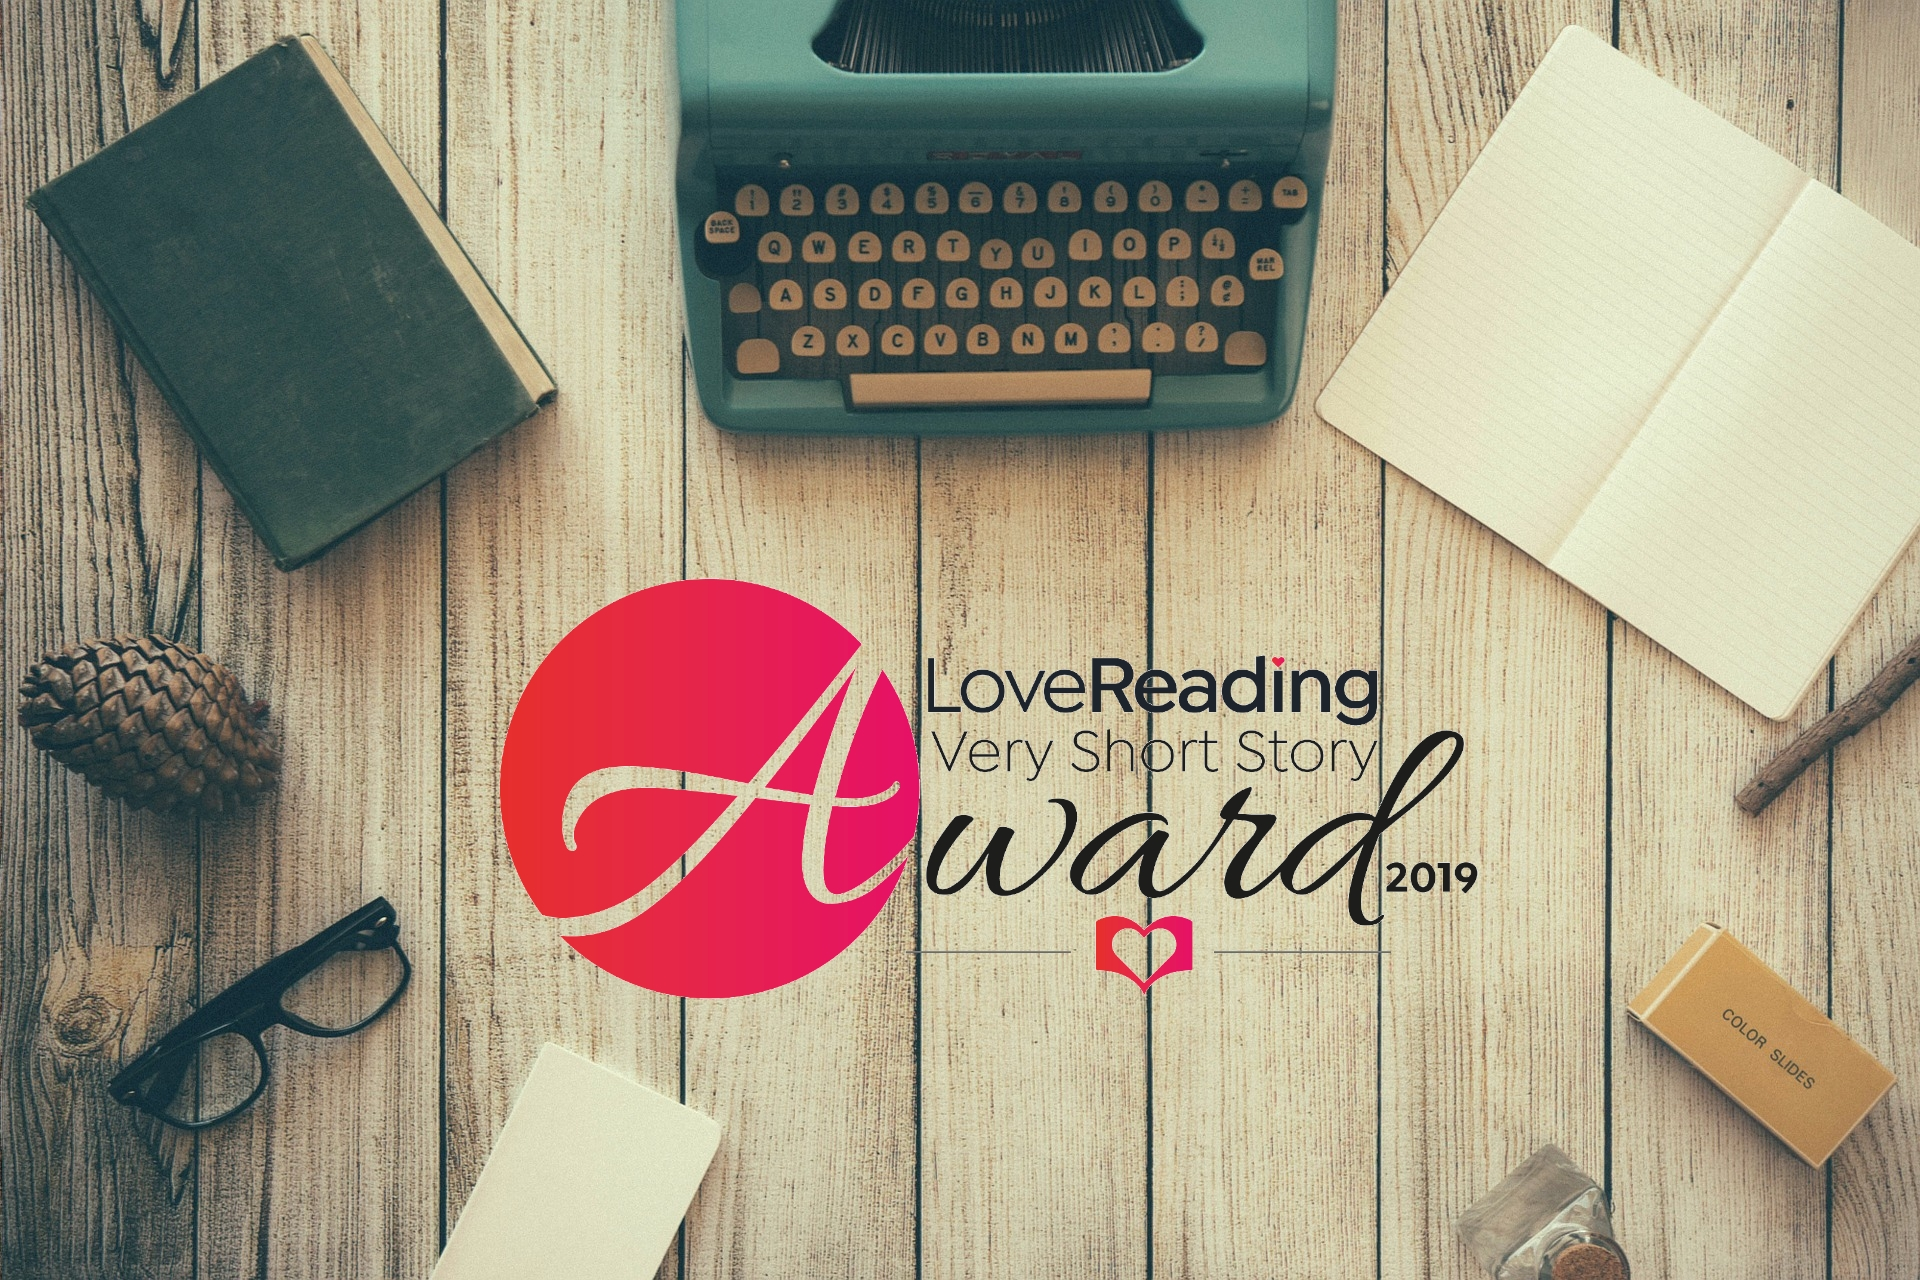 The LoveReading Very Short Story Awards 2019 - The Judges' thoughts